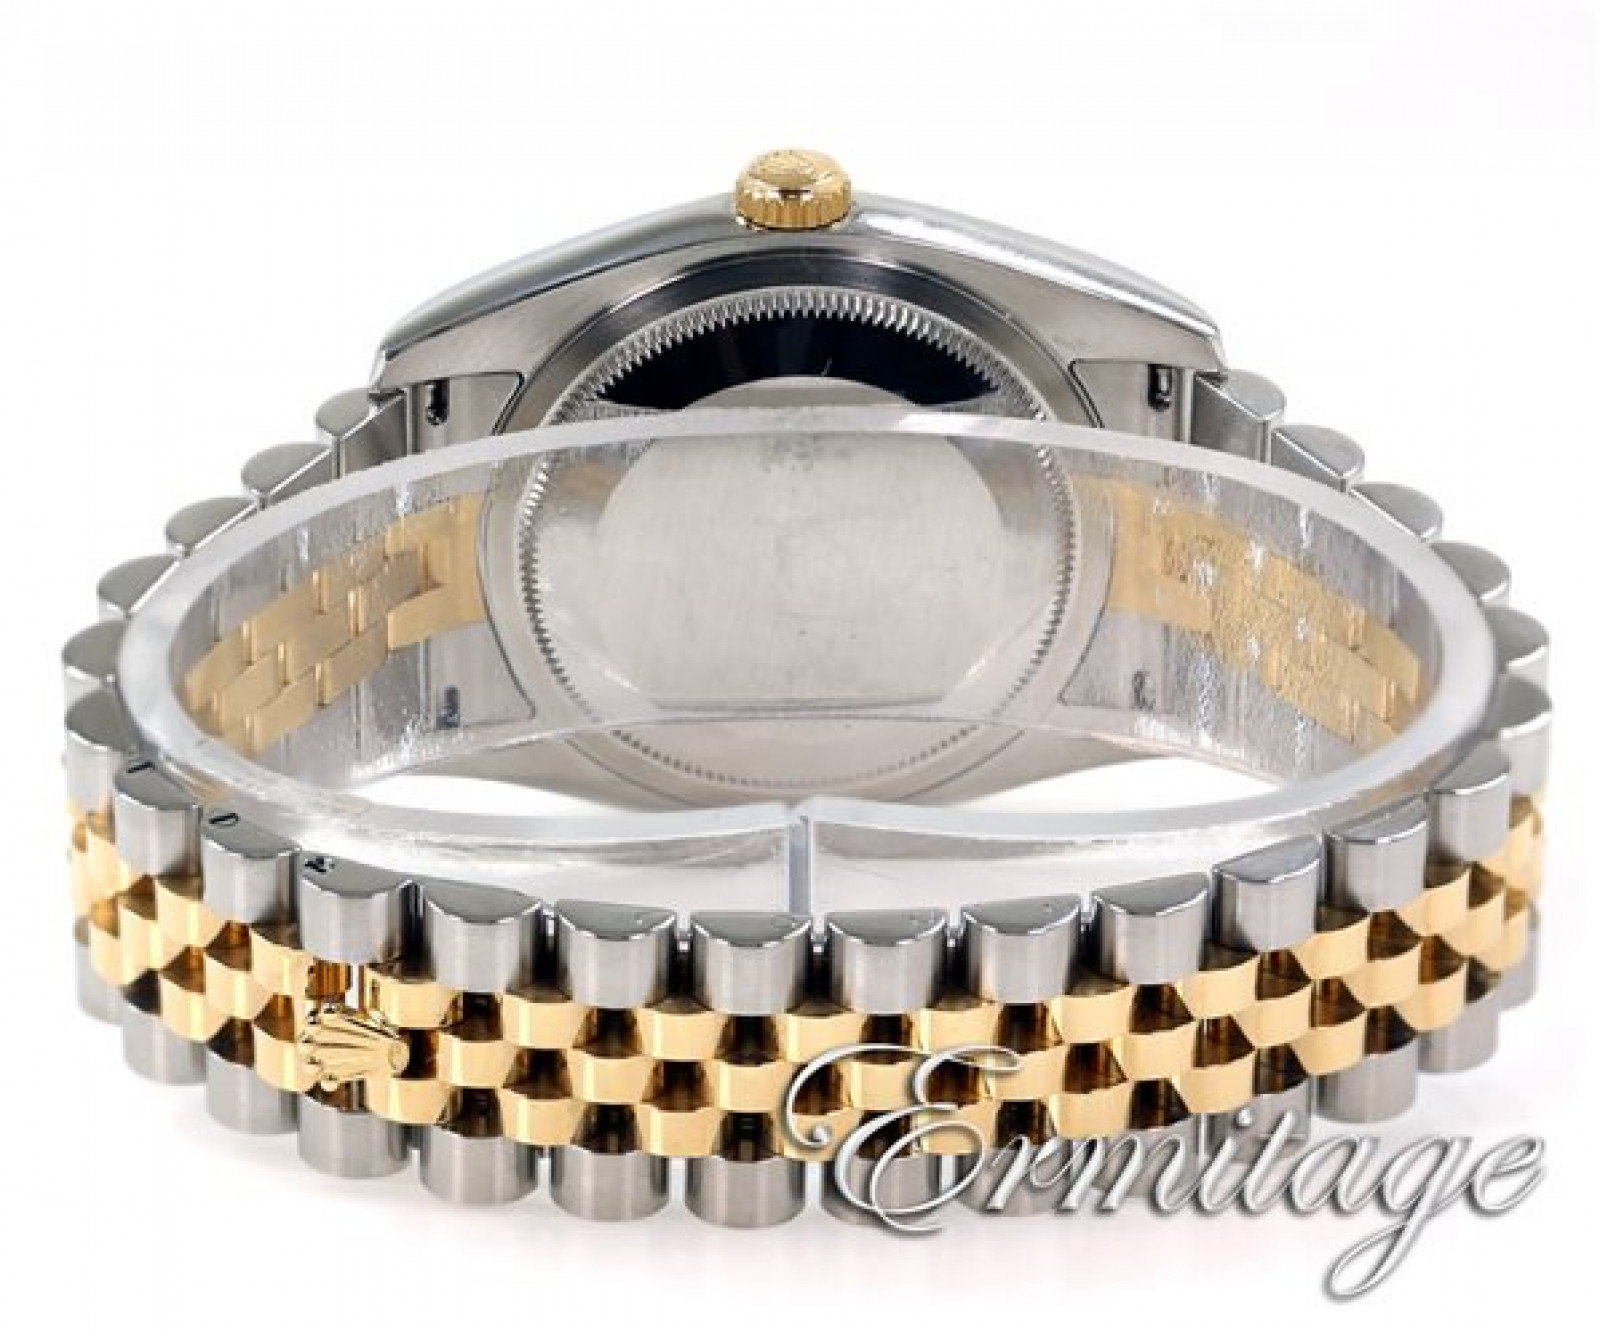 Rolex Oyster Perpetual Datejust 116233 Gold & Steel